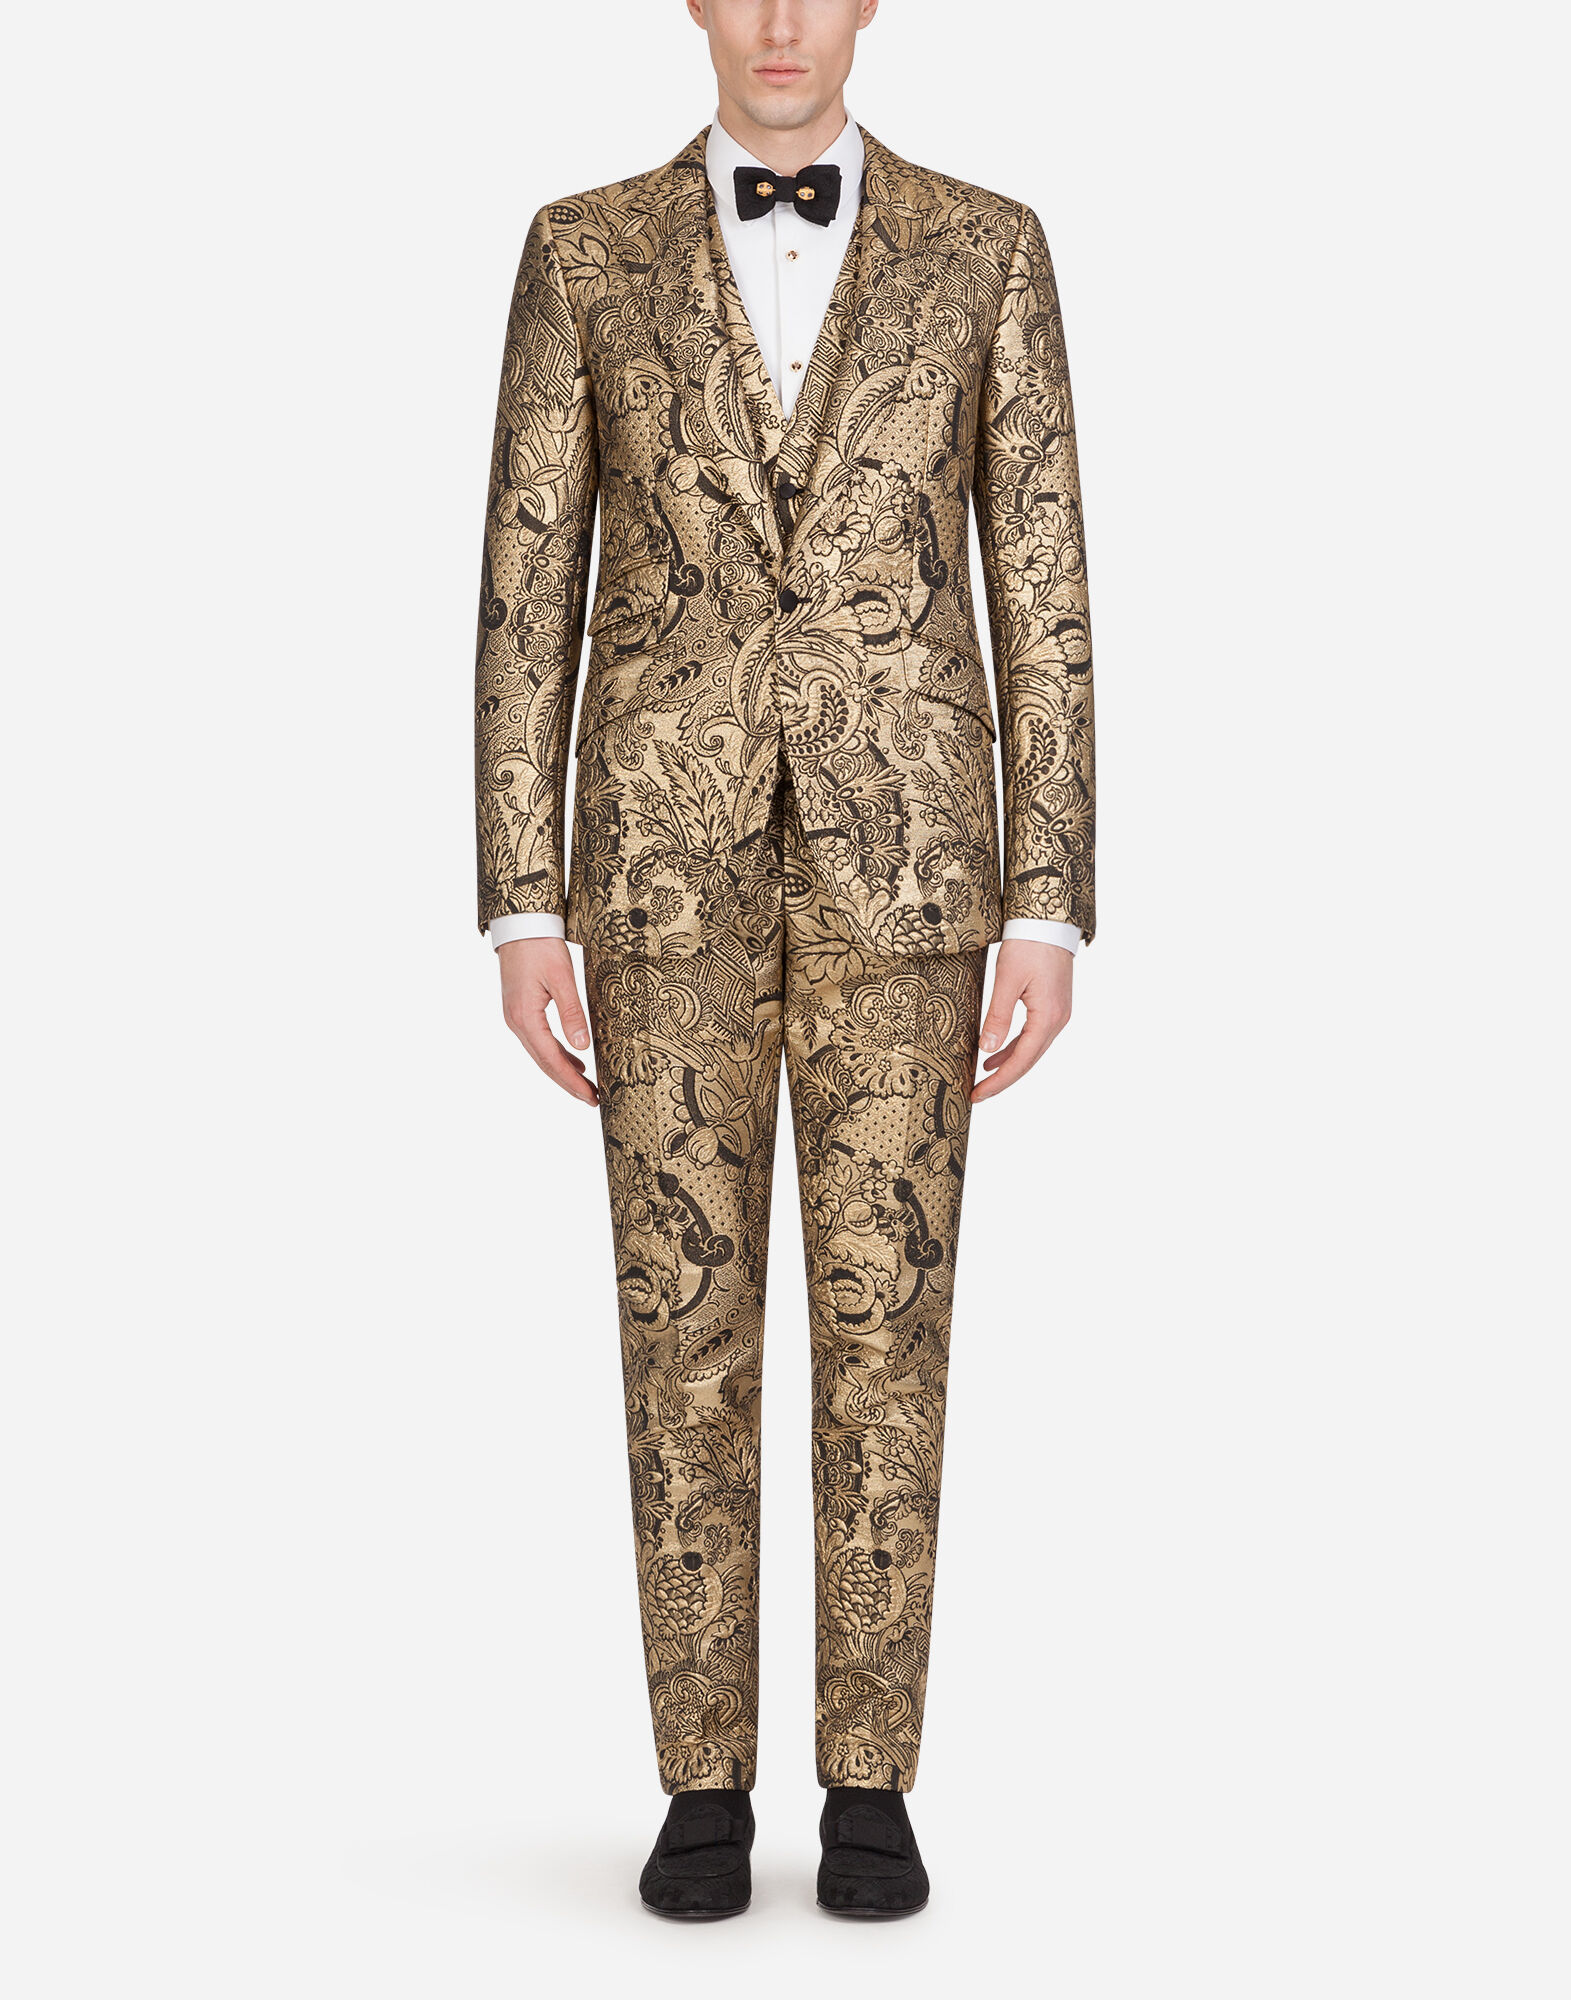 Men's Suits | Dolce&Gabbana